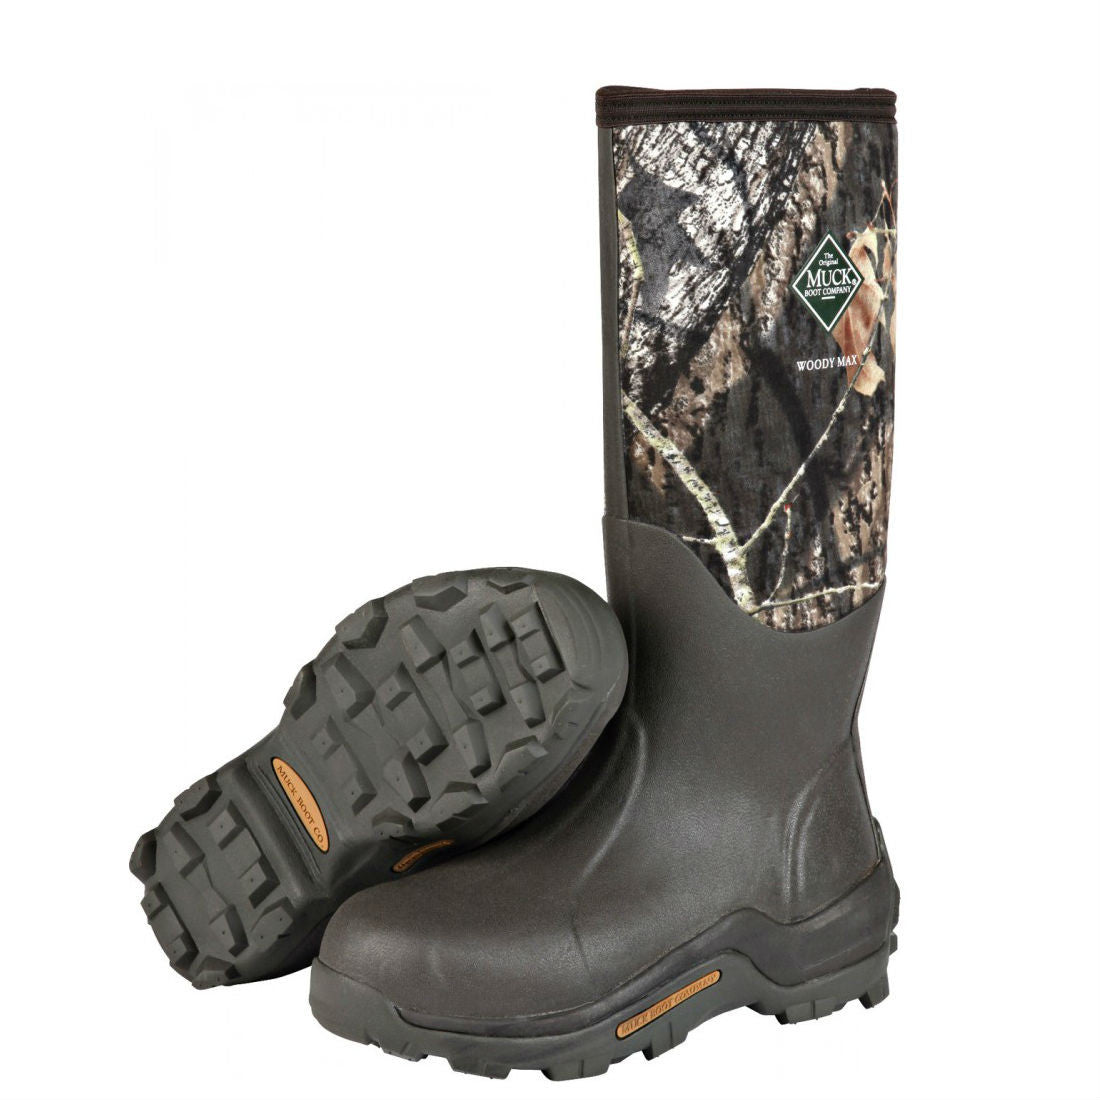 Muck Boots Woody Max Cold-Conditions Hunting Boot - Mossy Oak Break-Up WDM-MOBU